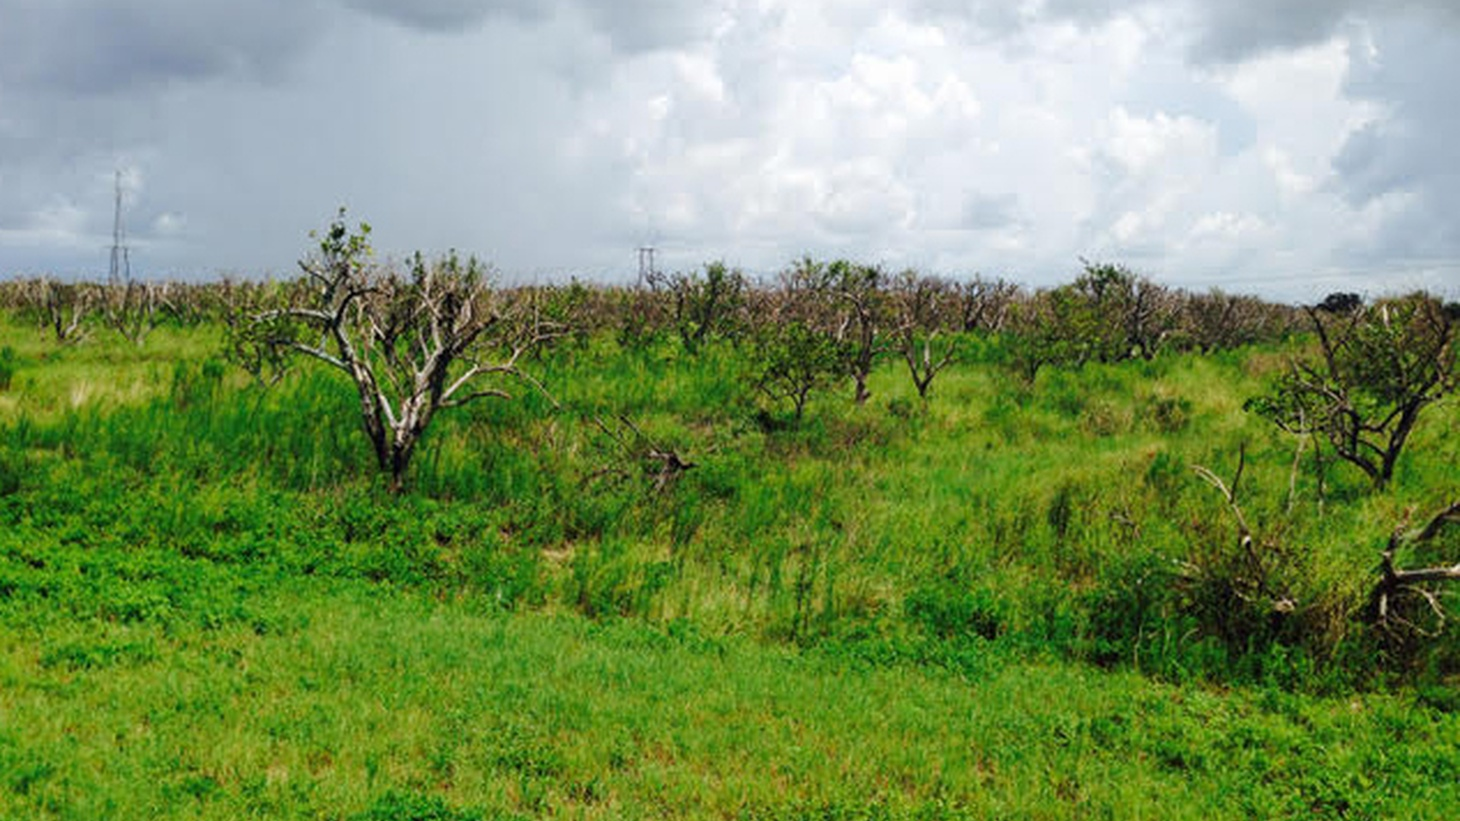 HLB-infected citrus grove in Florida, abandoned and dying.